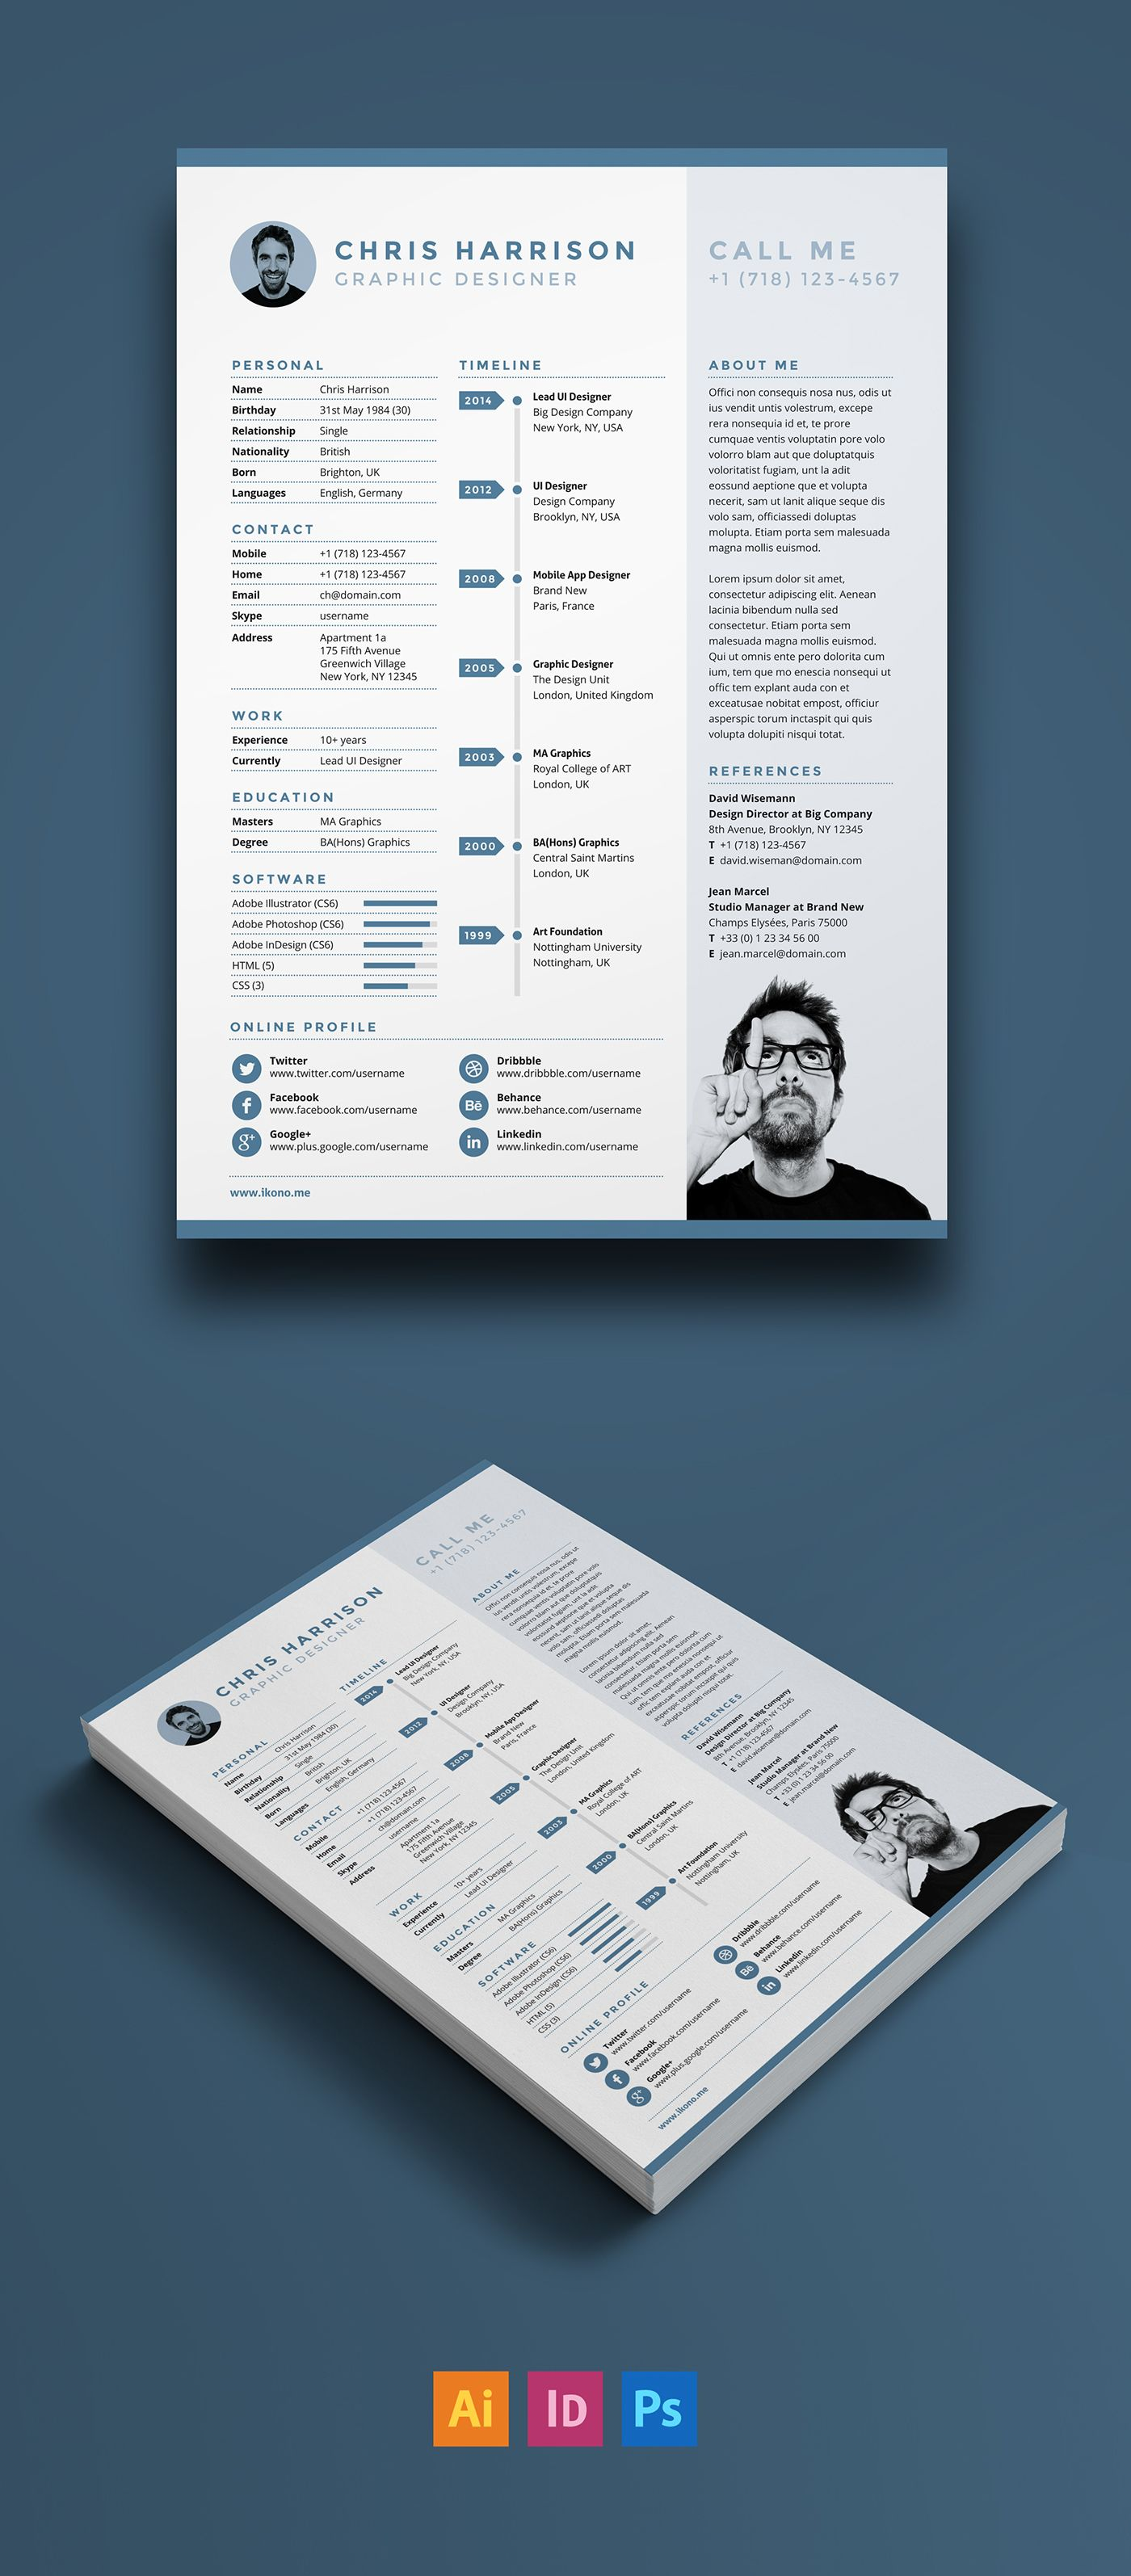 Free Resume Is The Single Page Resume Template You Can Download For  Free.this Simple, Clean And Functional One Page Resume Template Is Provided  In In A4 For